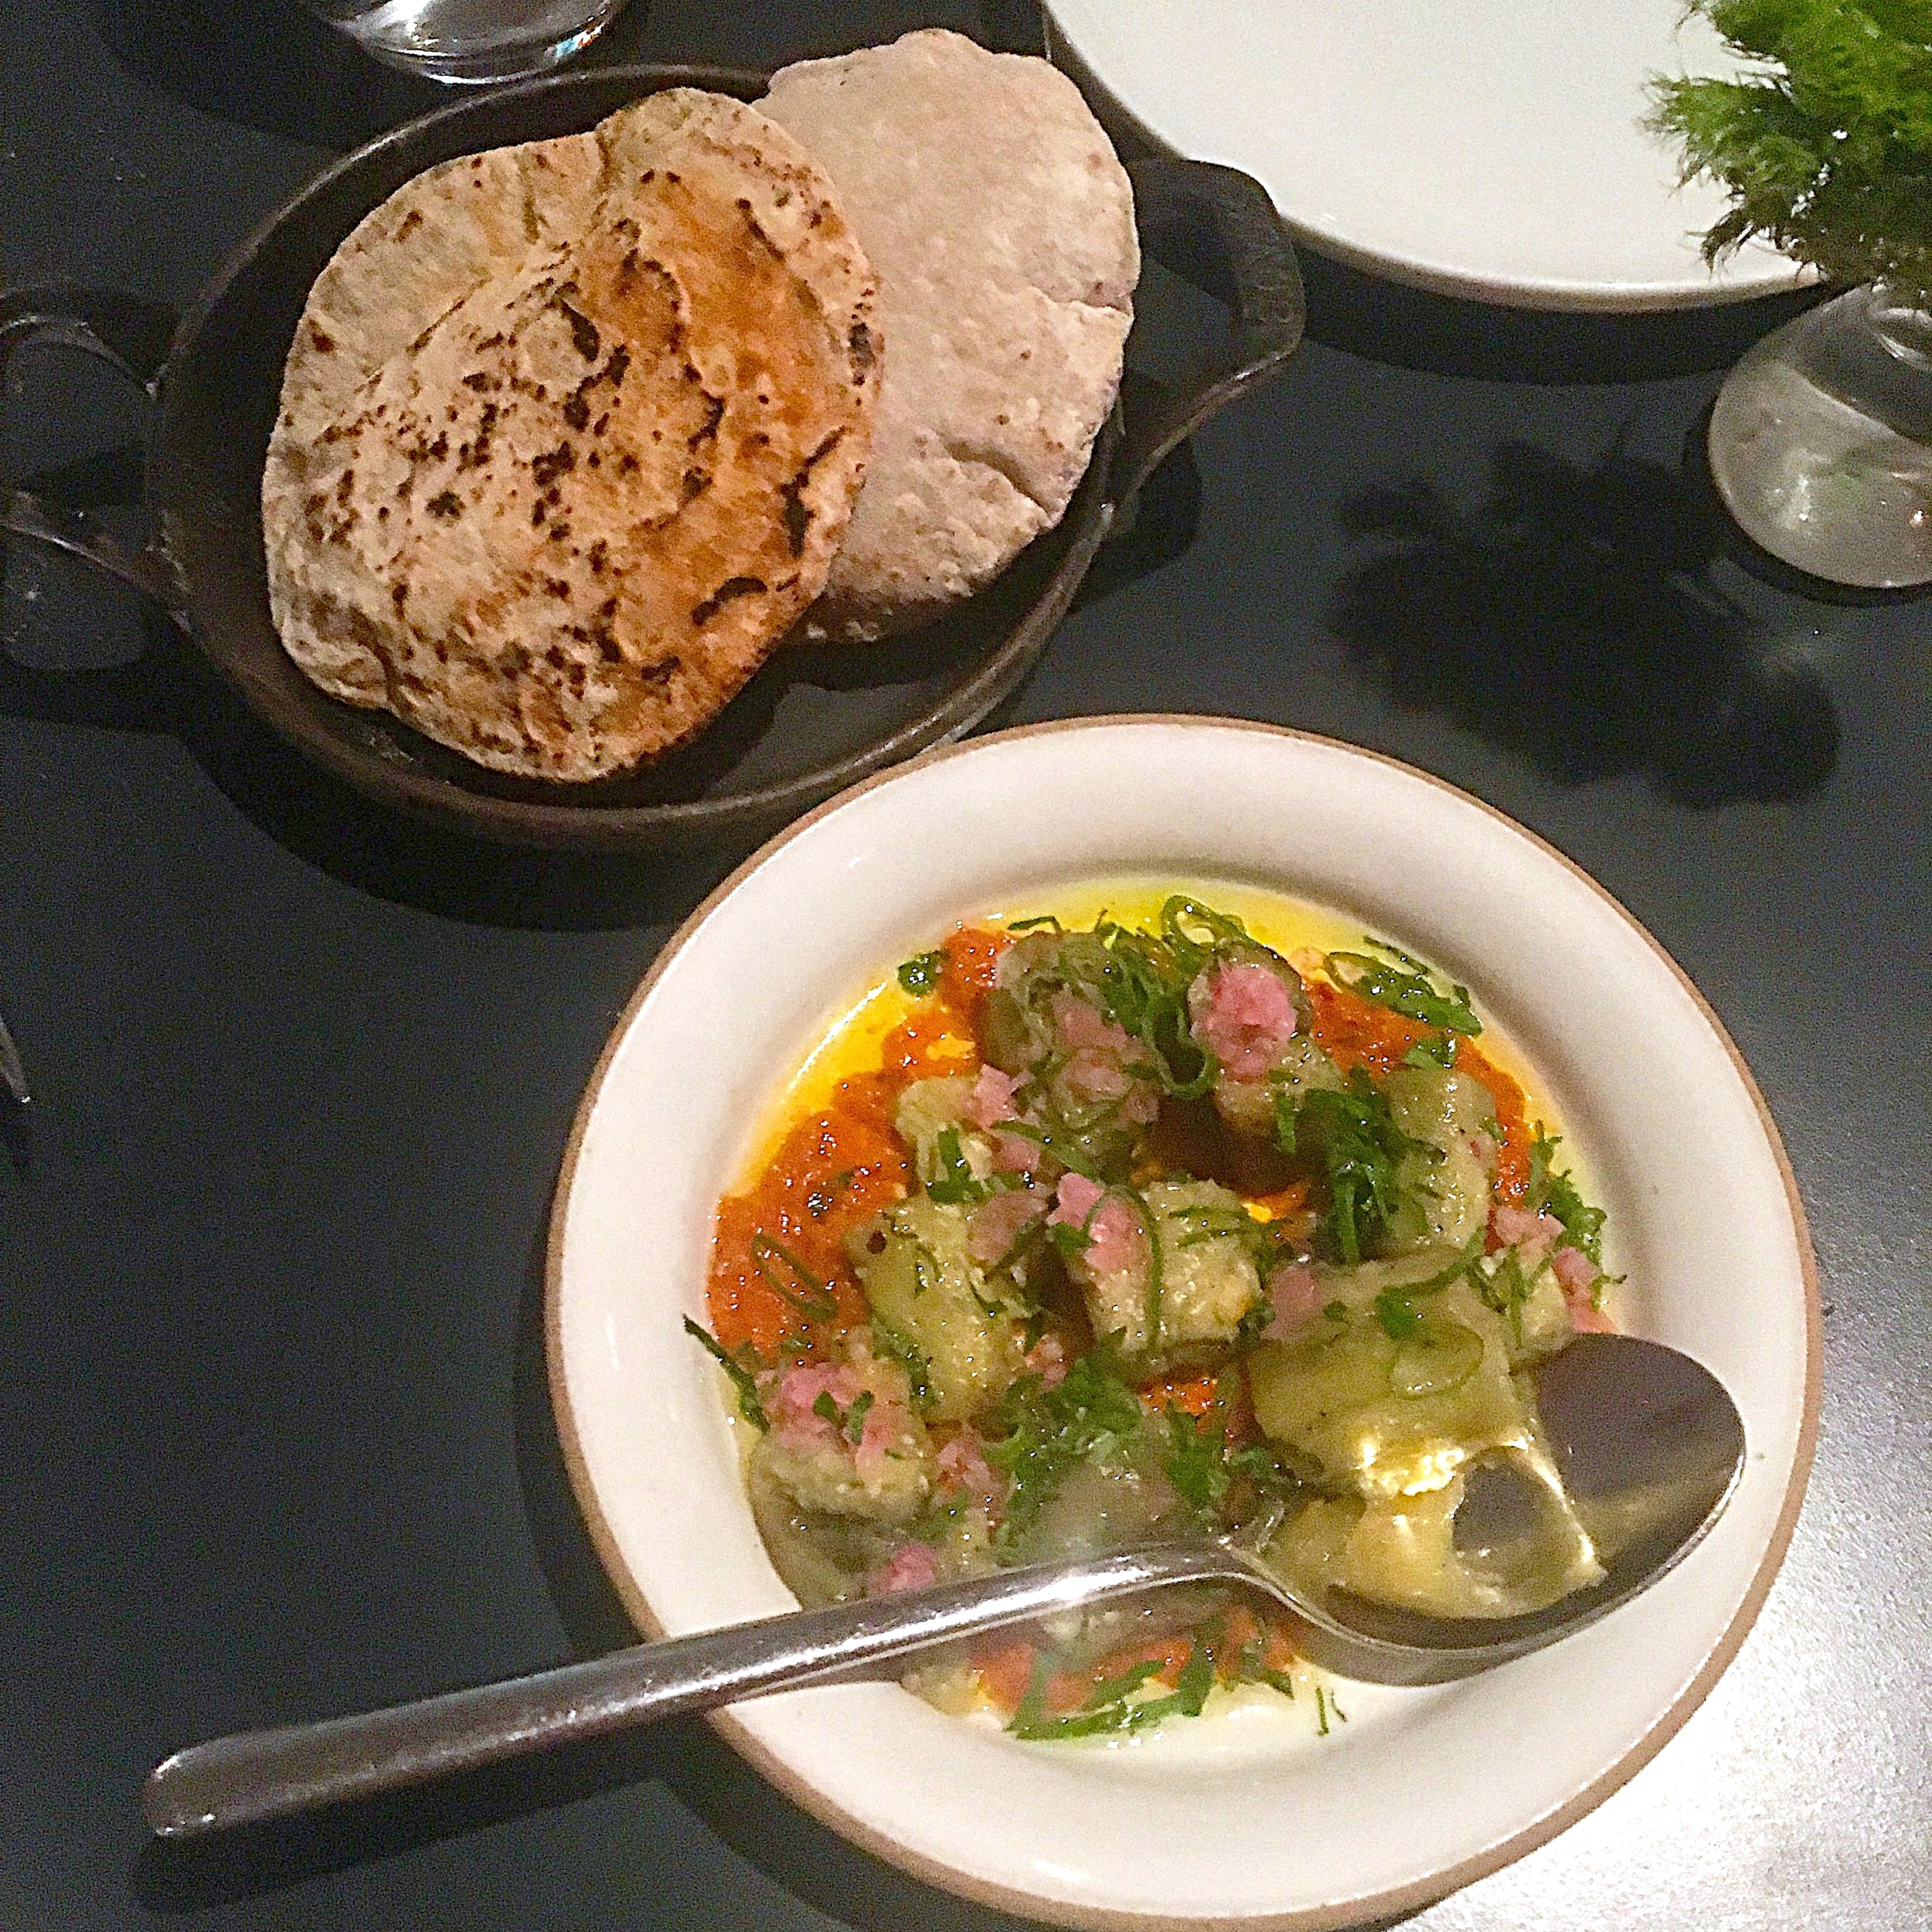 roasted eggplant, carrot-hazelnut romesco, whole wheat pita